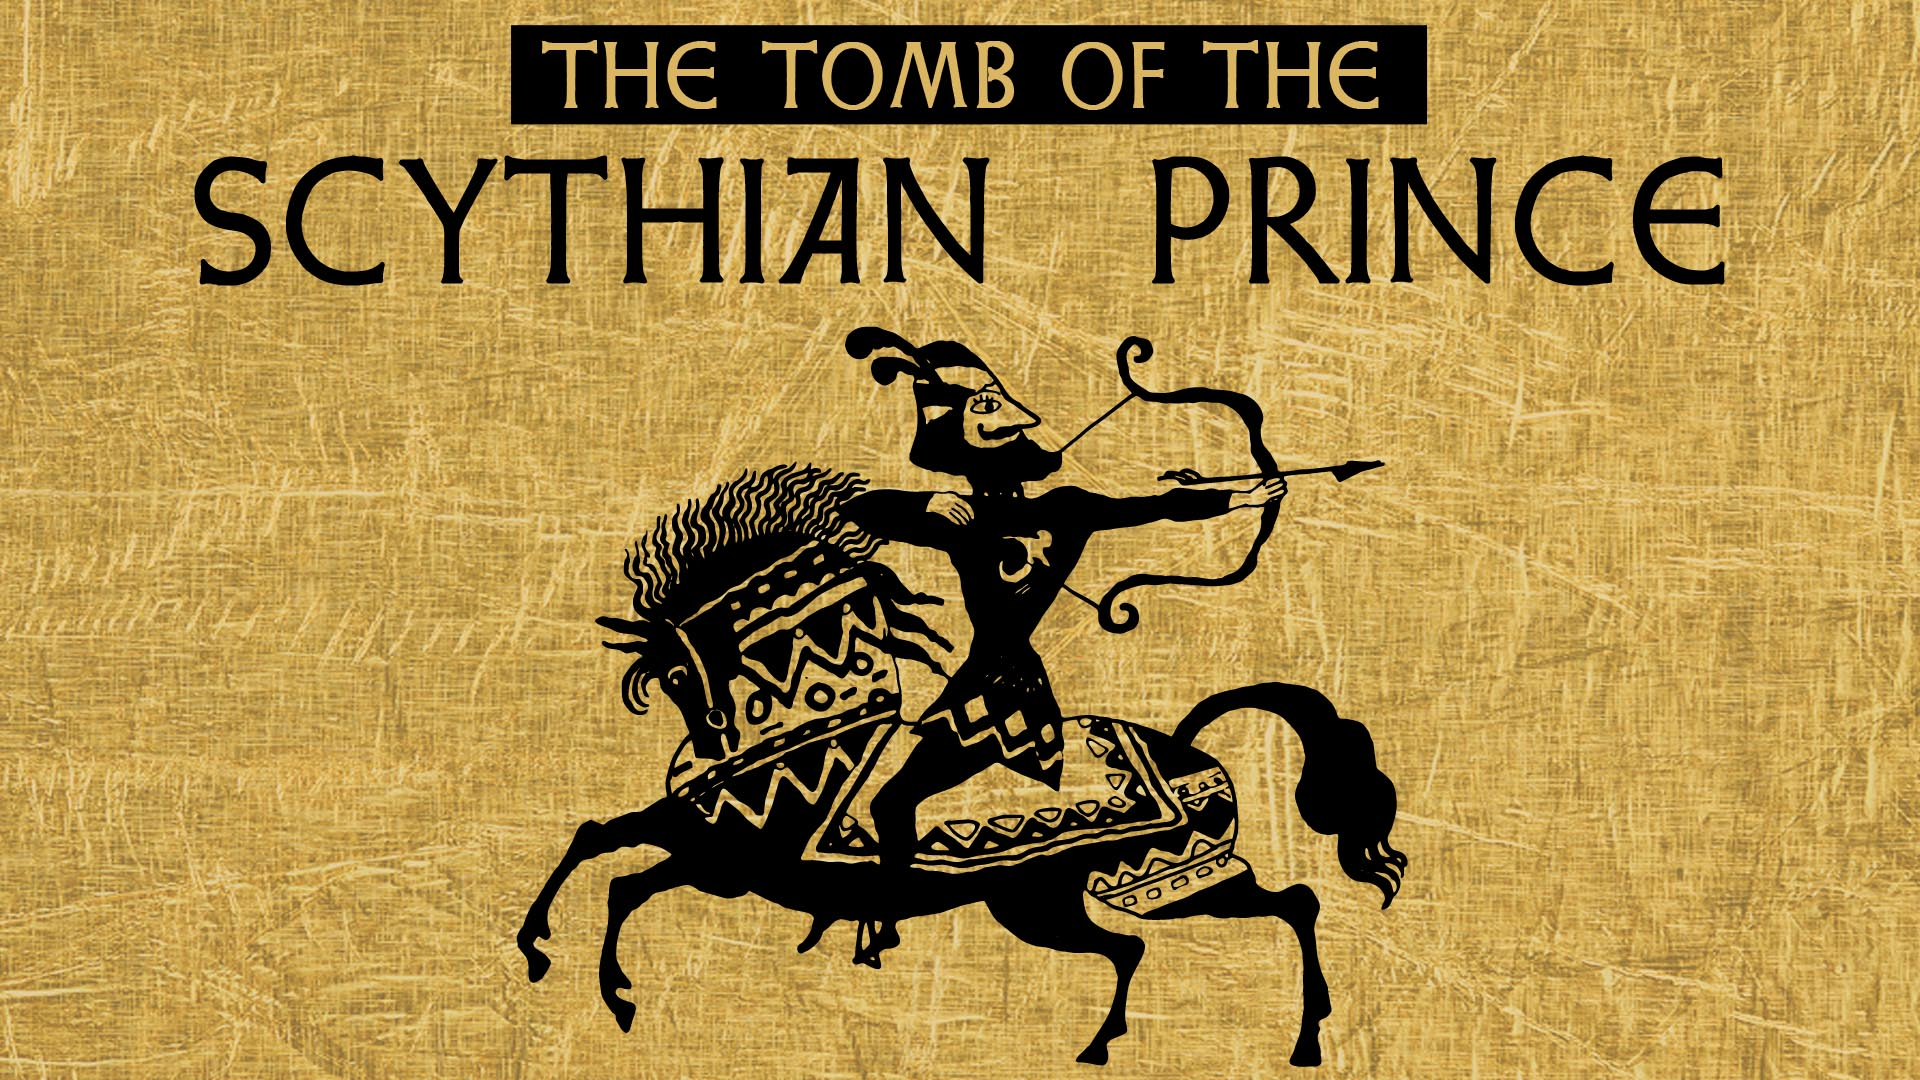 The Tomb of the Scythian Prince